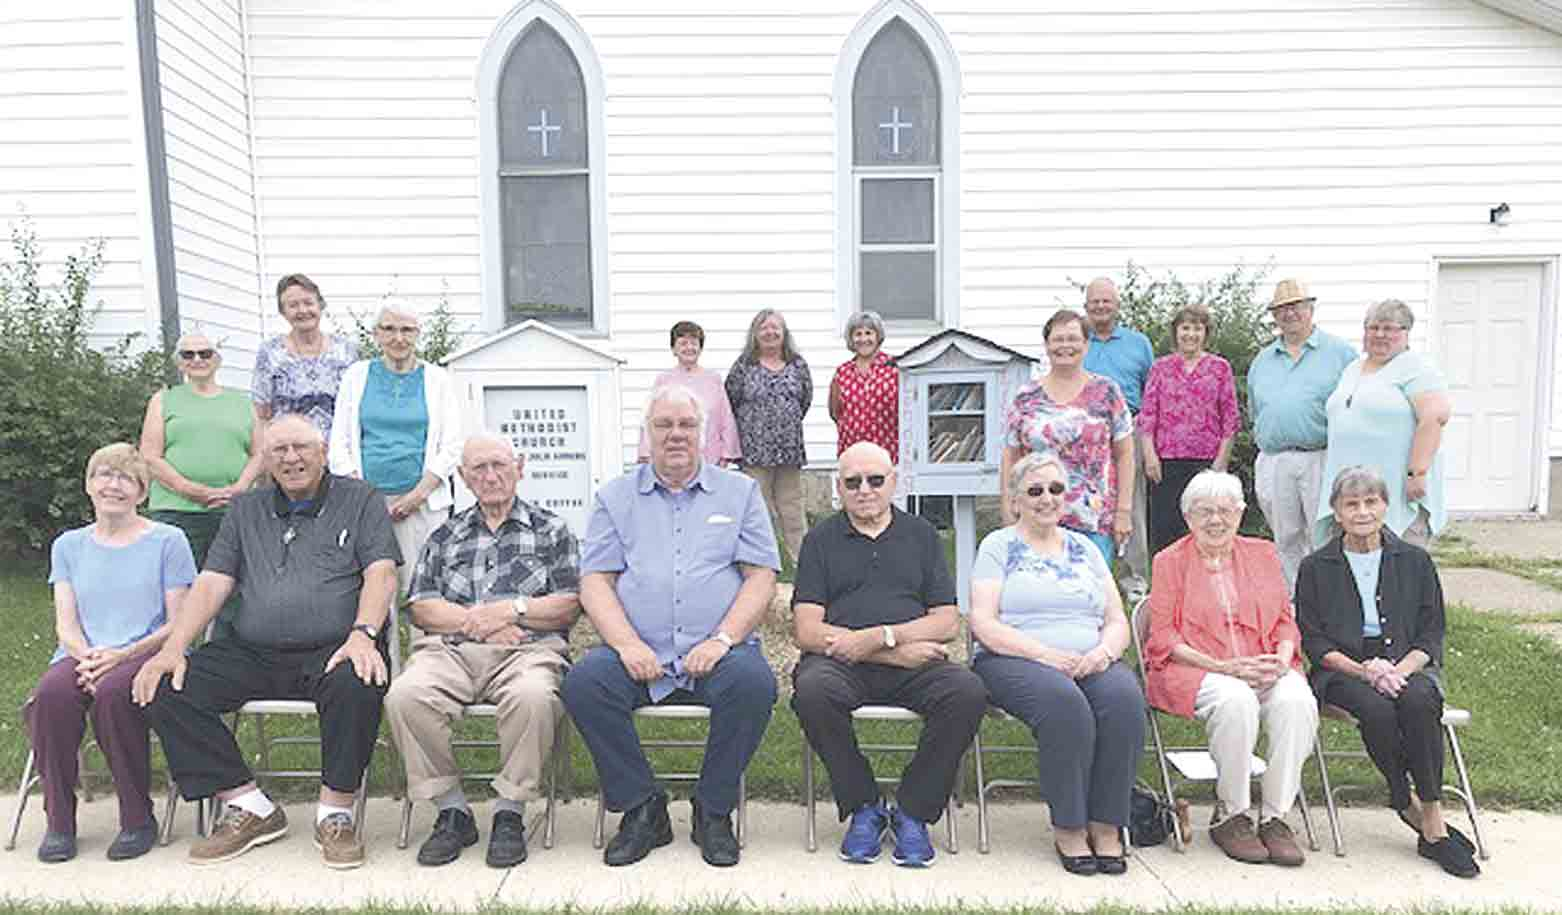 Randalia United Methodist Church is celebrating the 125th year of their church building and their 98th Annual Homecoming, Sunday, Aug. 25. Congregation members include (front, l-r) Sheila Johnson, Ron Ahrens, Norm Klink, Richard Bishop, Eldon and Shirley Rose, Pat Custer, Marlene Mayo, (back) Geri...